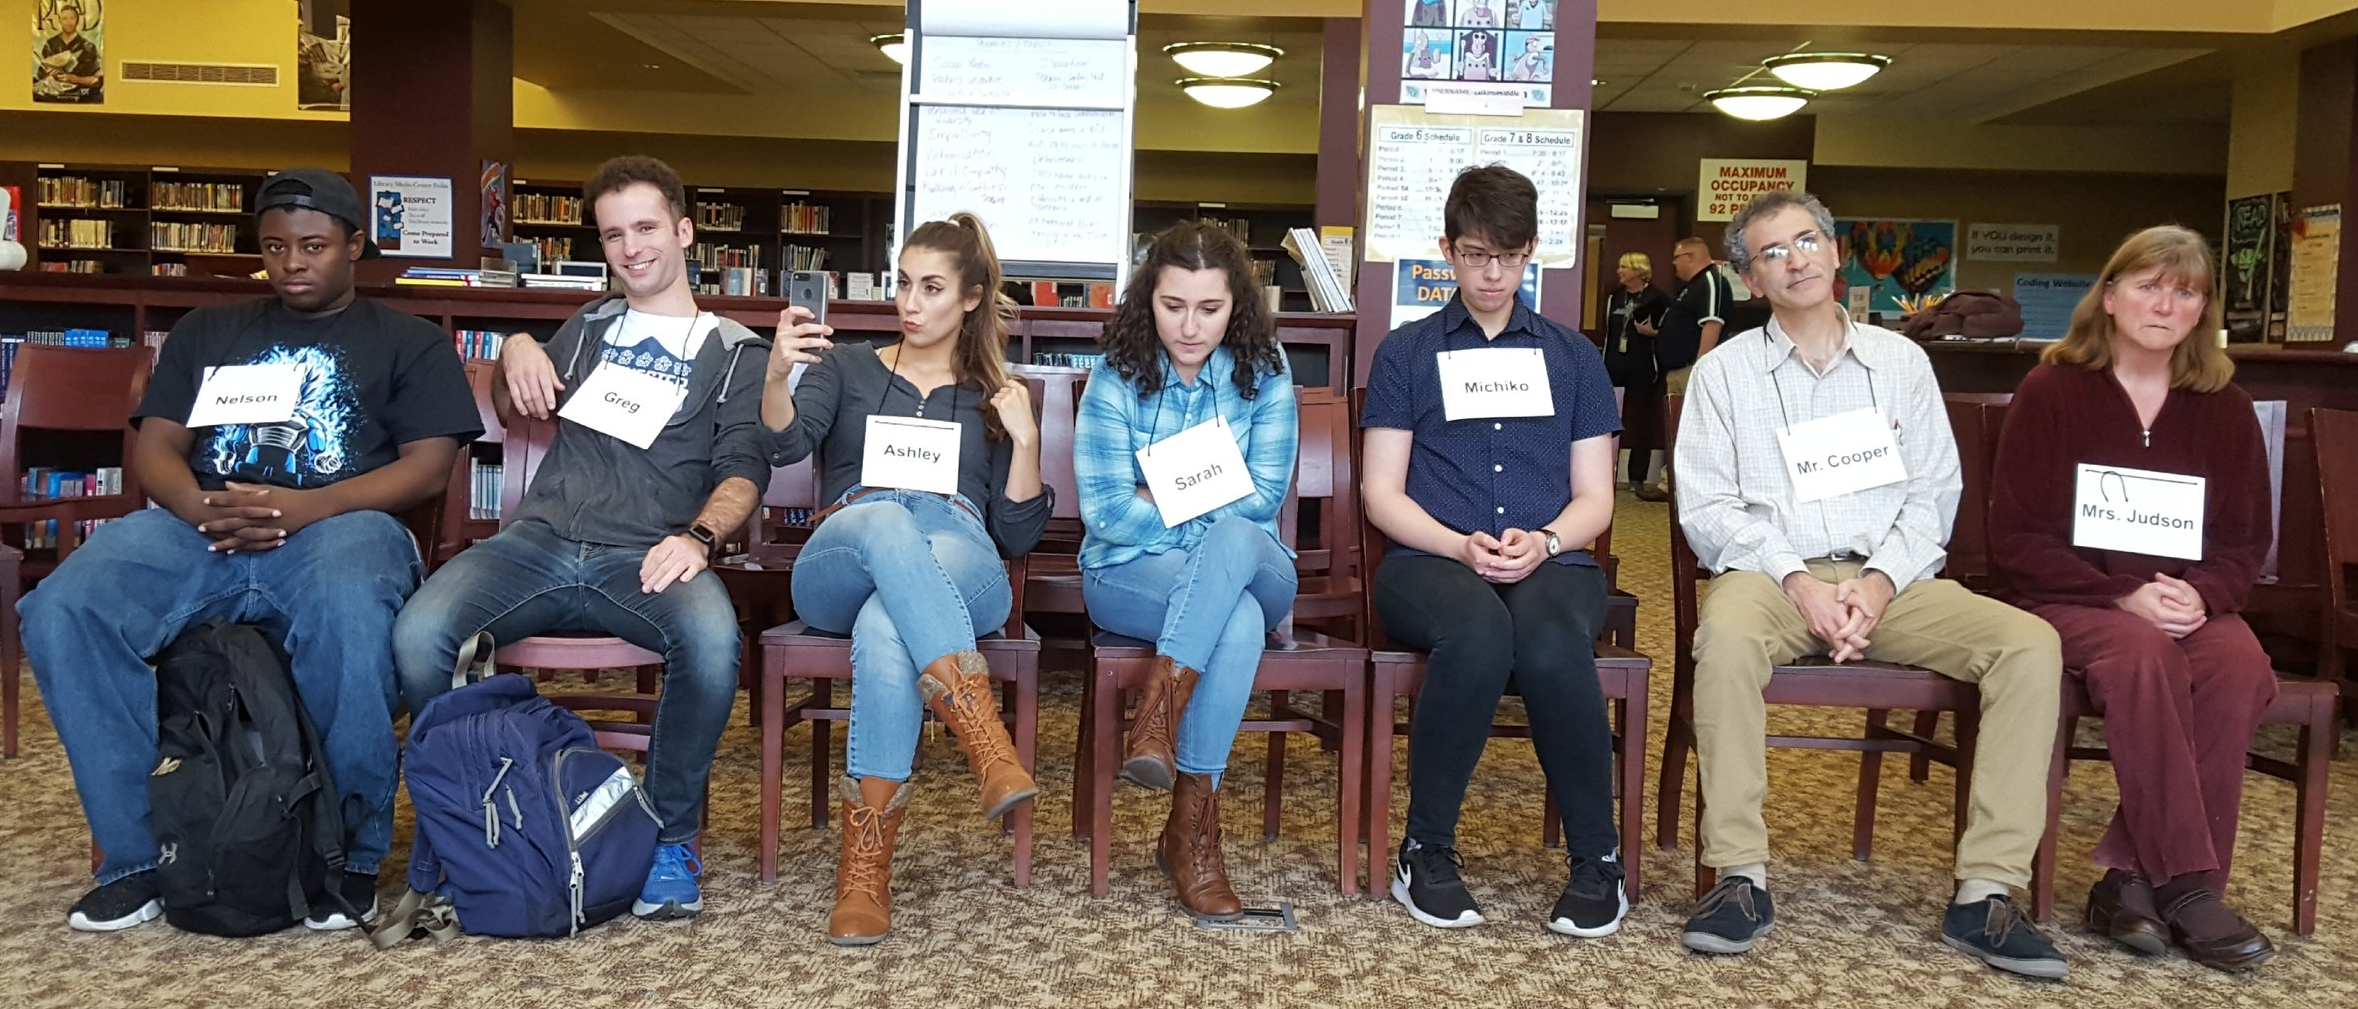 """""""Hot-seating"""" the chacters in the interactive scene, """"What We don't See"""""""